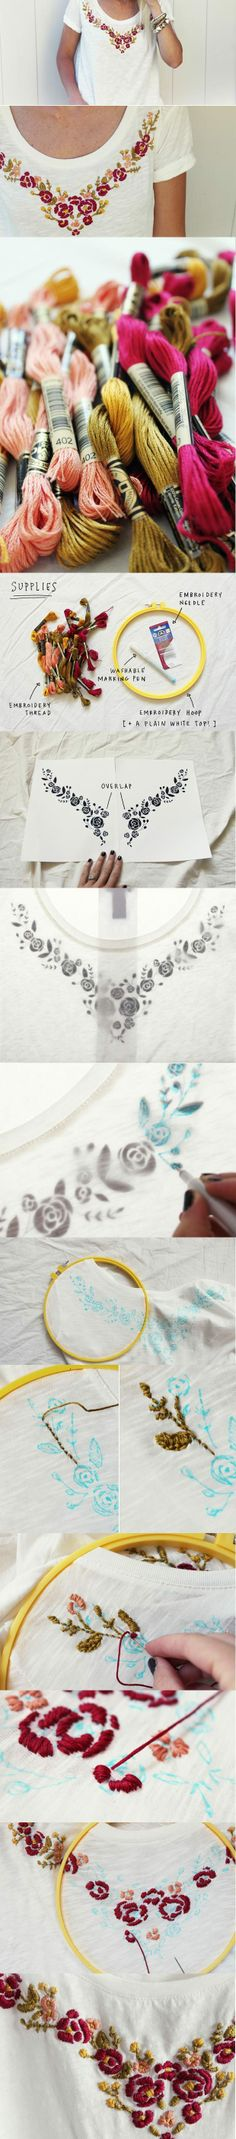 DIY: Hand Embroidered T shirt